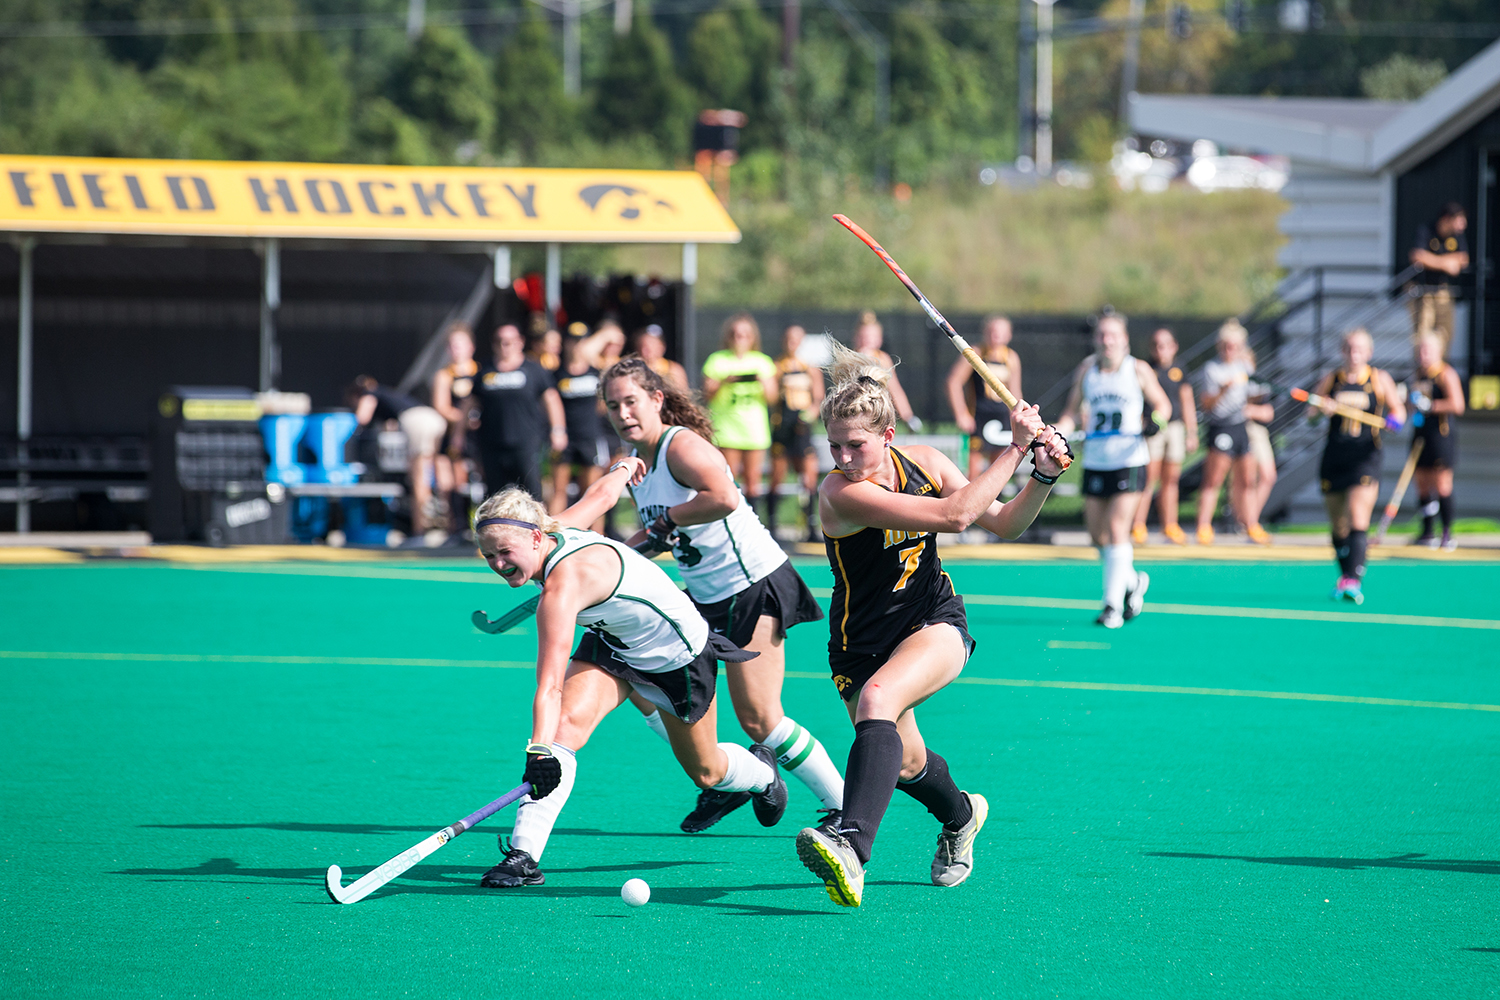 Iowa%27s+Ellie+Holley+prepares+a+shot+during+a+field+hockey+match+between+Iowa+and+Dartmouth+College+at+Grant+Field+on+Friday%2C+August+31%2C+2018.+The+Hawkeyes+shut+out+the+Big+Green%2C+6-0.